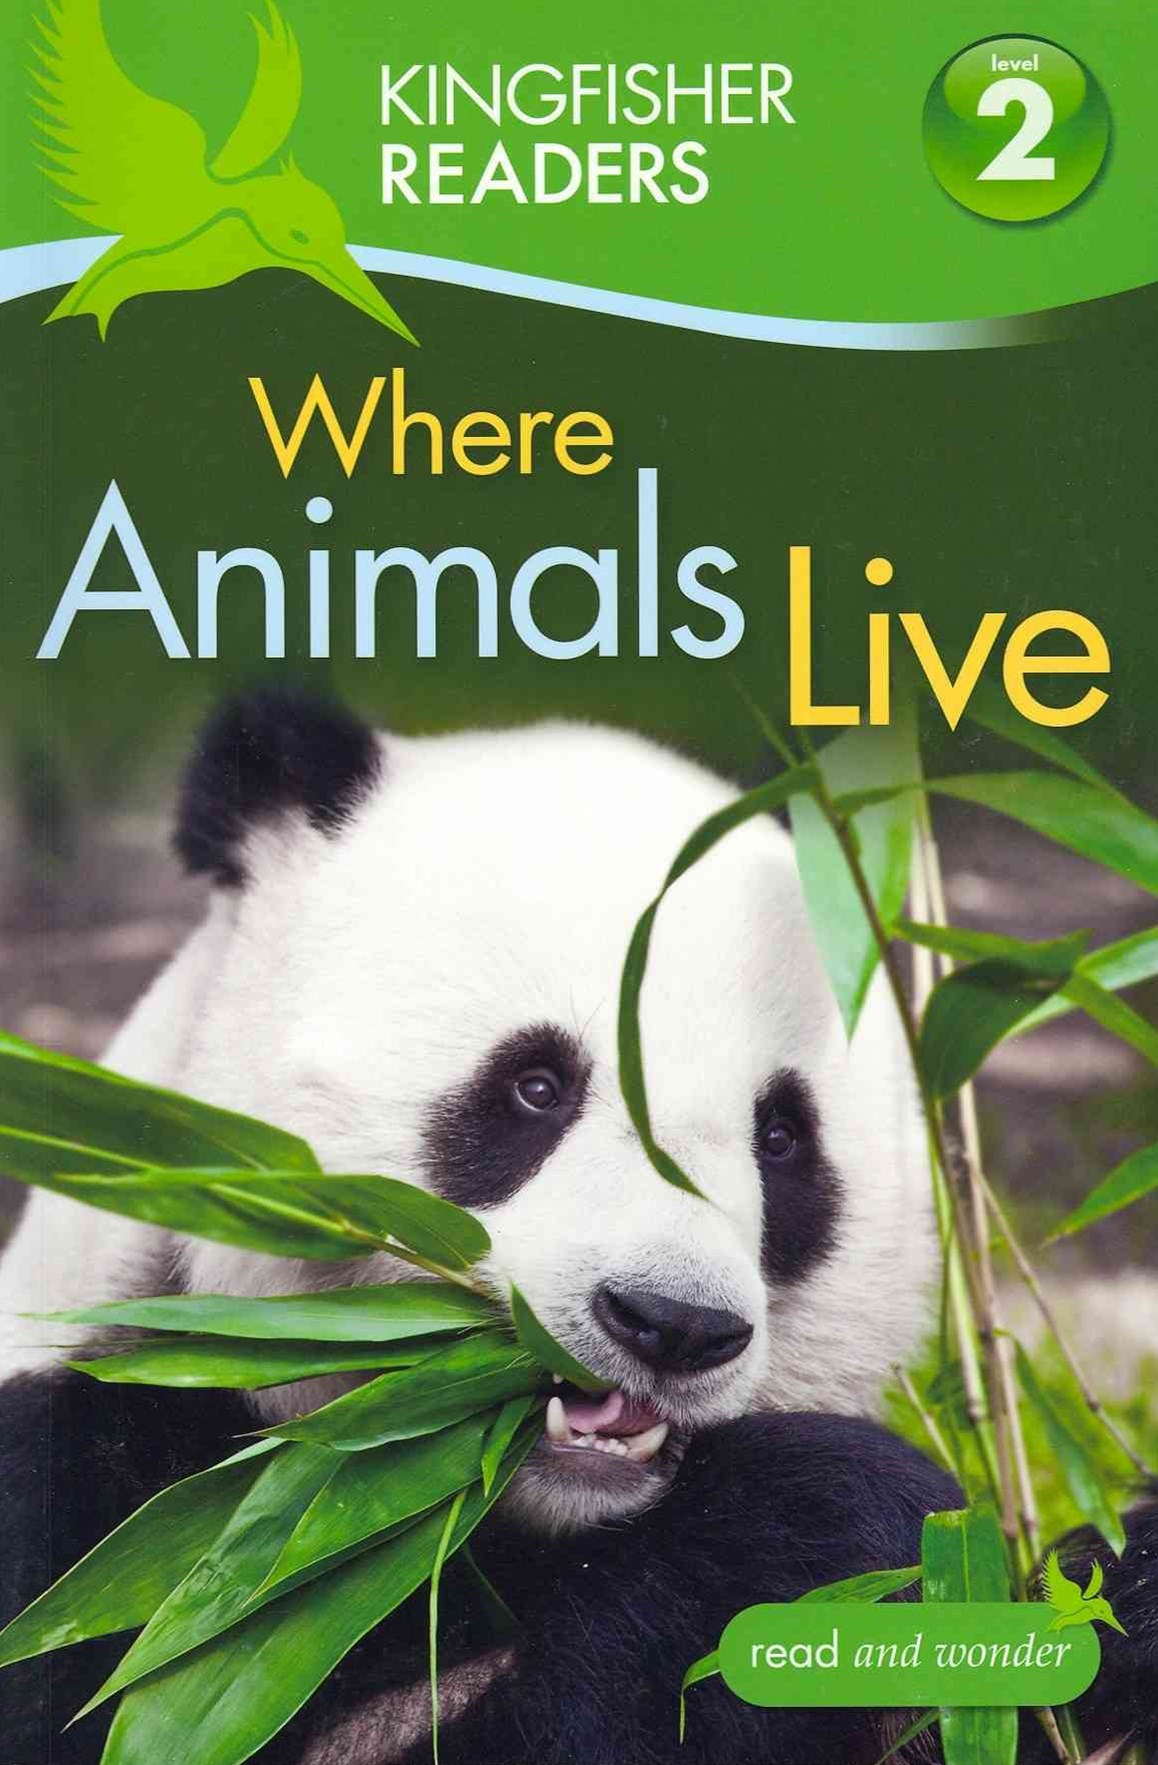 Kingfisher Readers: Level 2 Where Animals Live